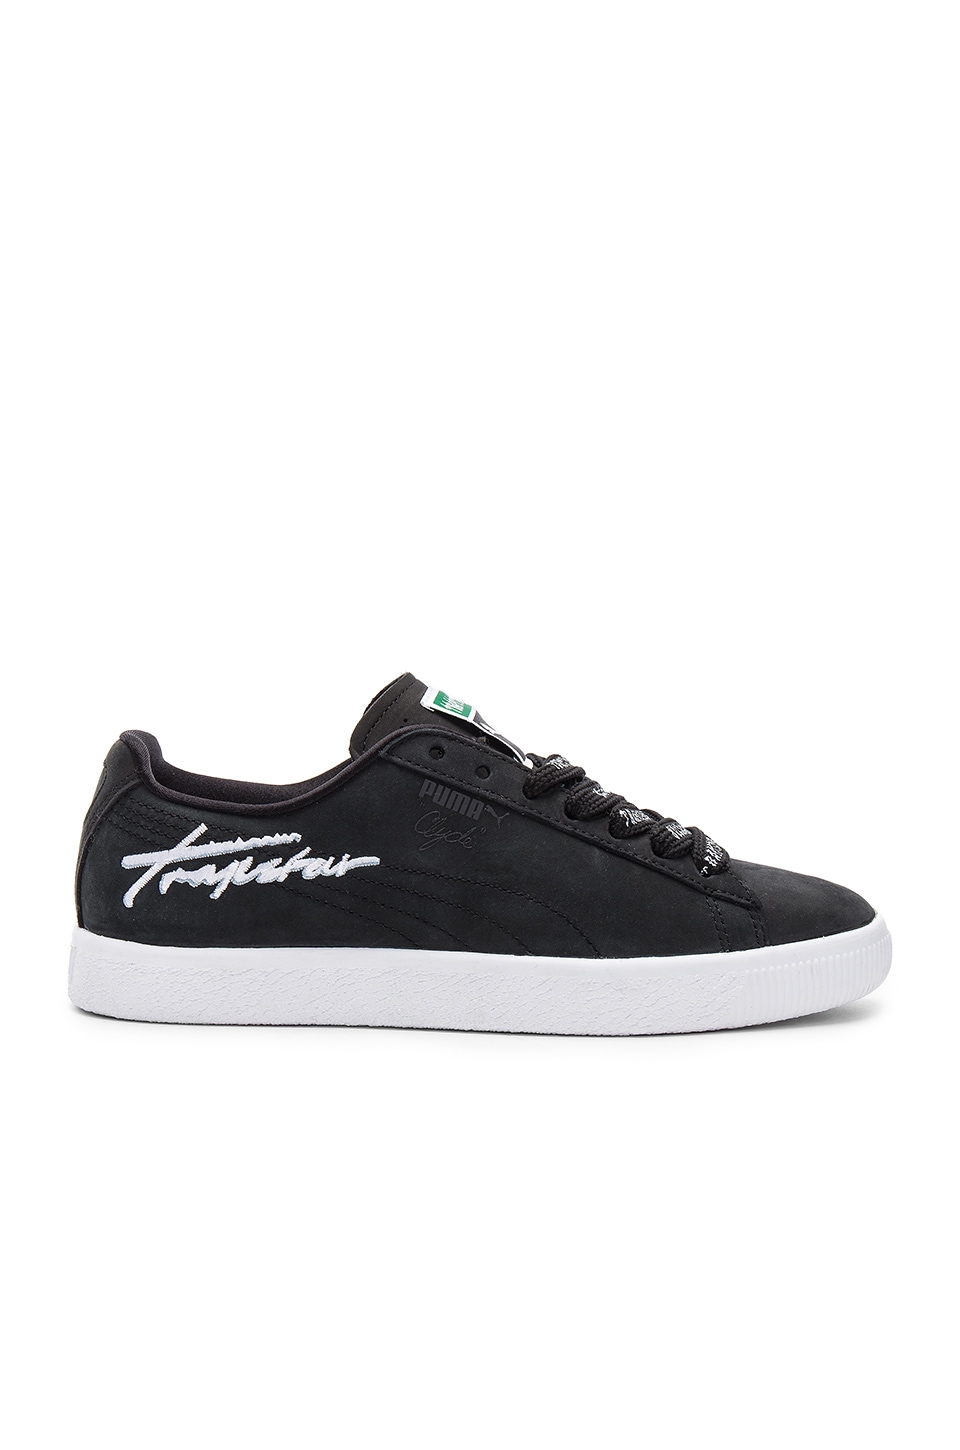 x Trapstar Clyde Bold by Puma Select